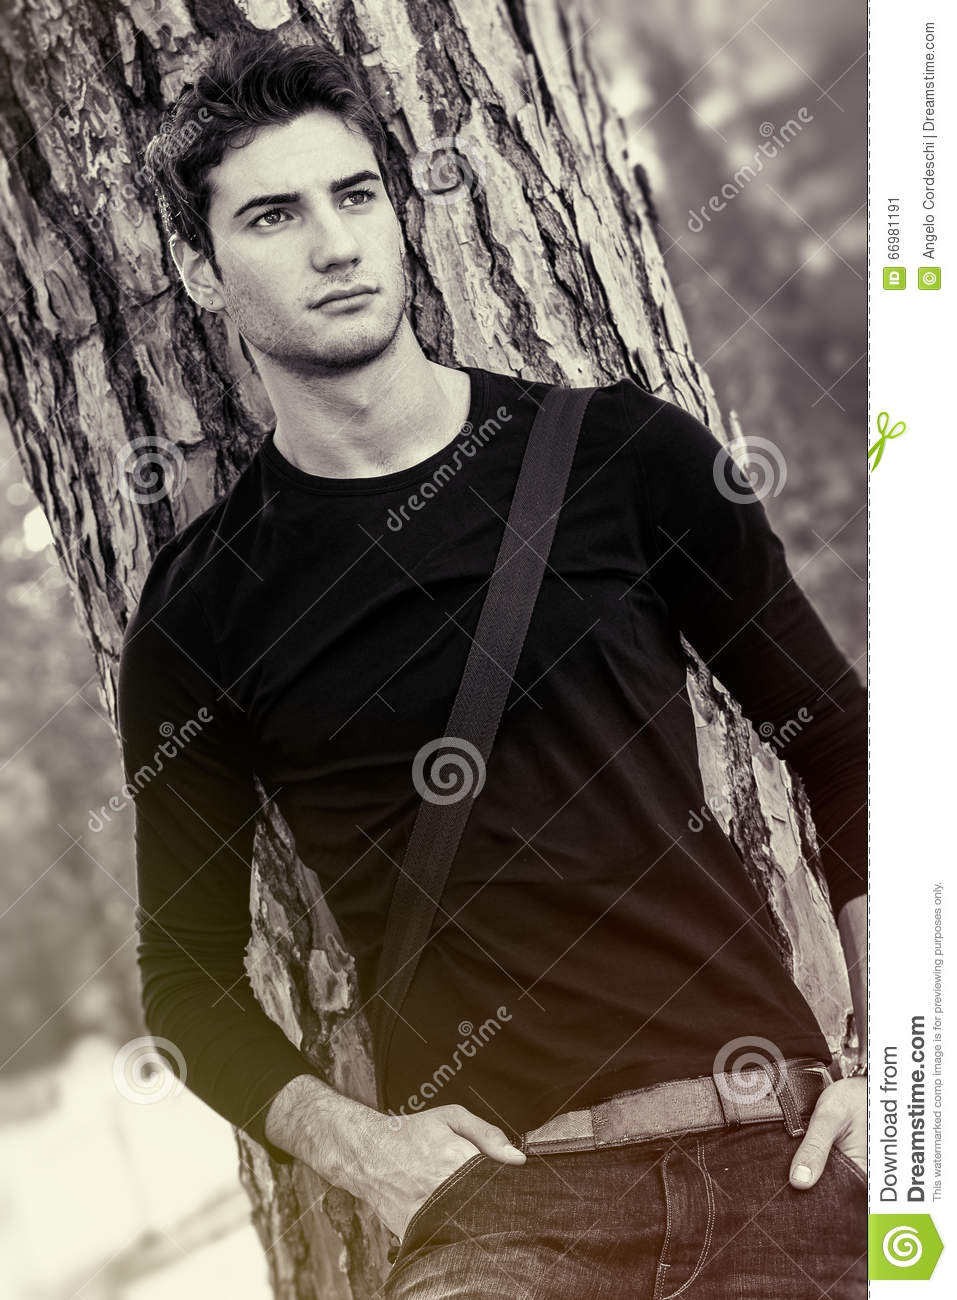 Man model natural and beautiful sweet lover boy black and white